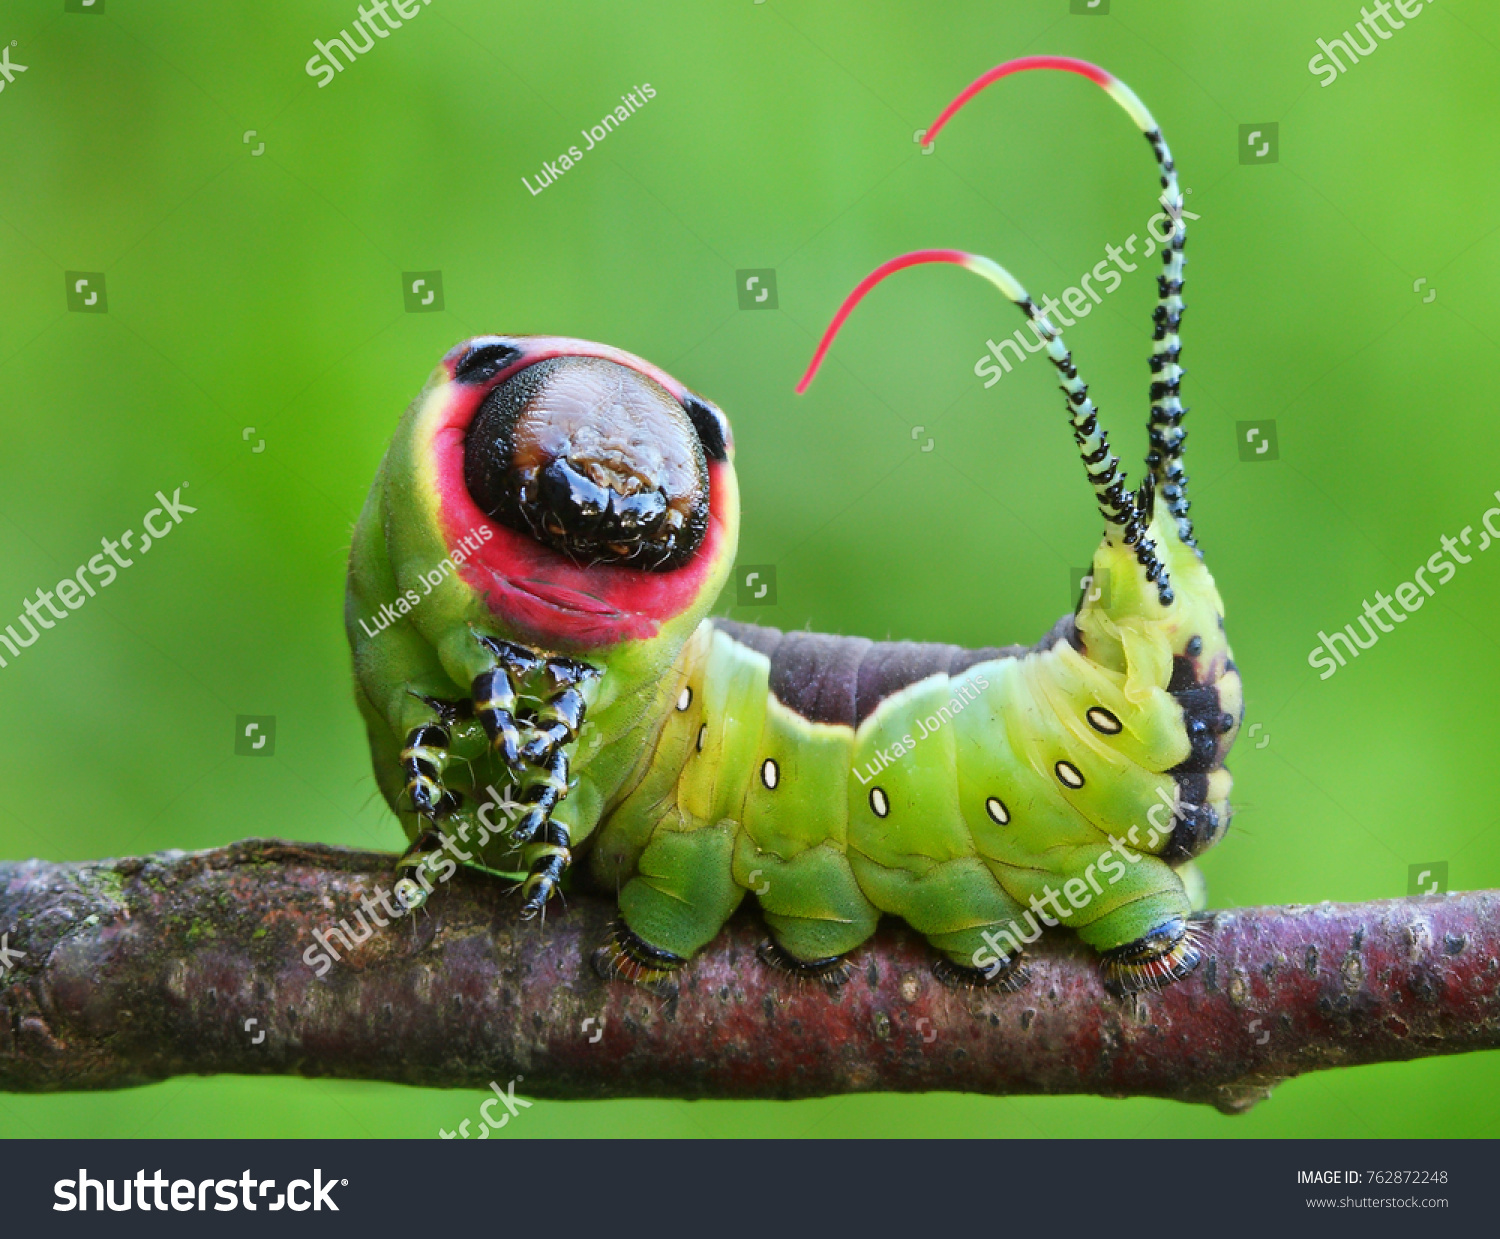 Beautiful caterpillar in a frightening pose #762872248